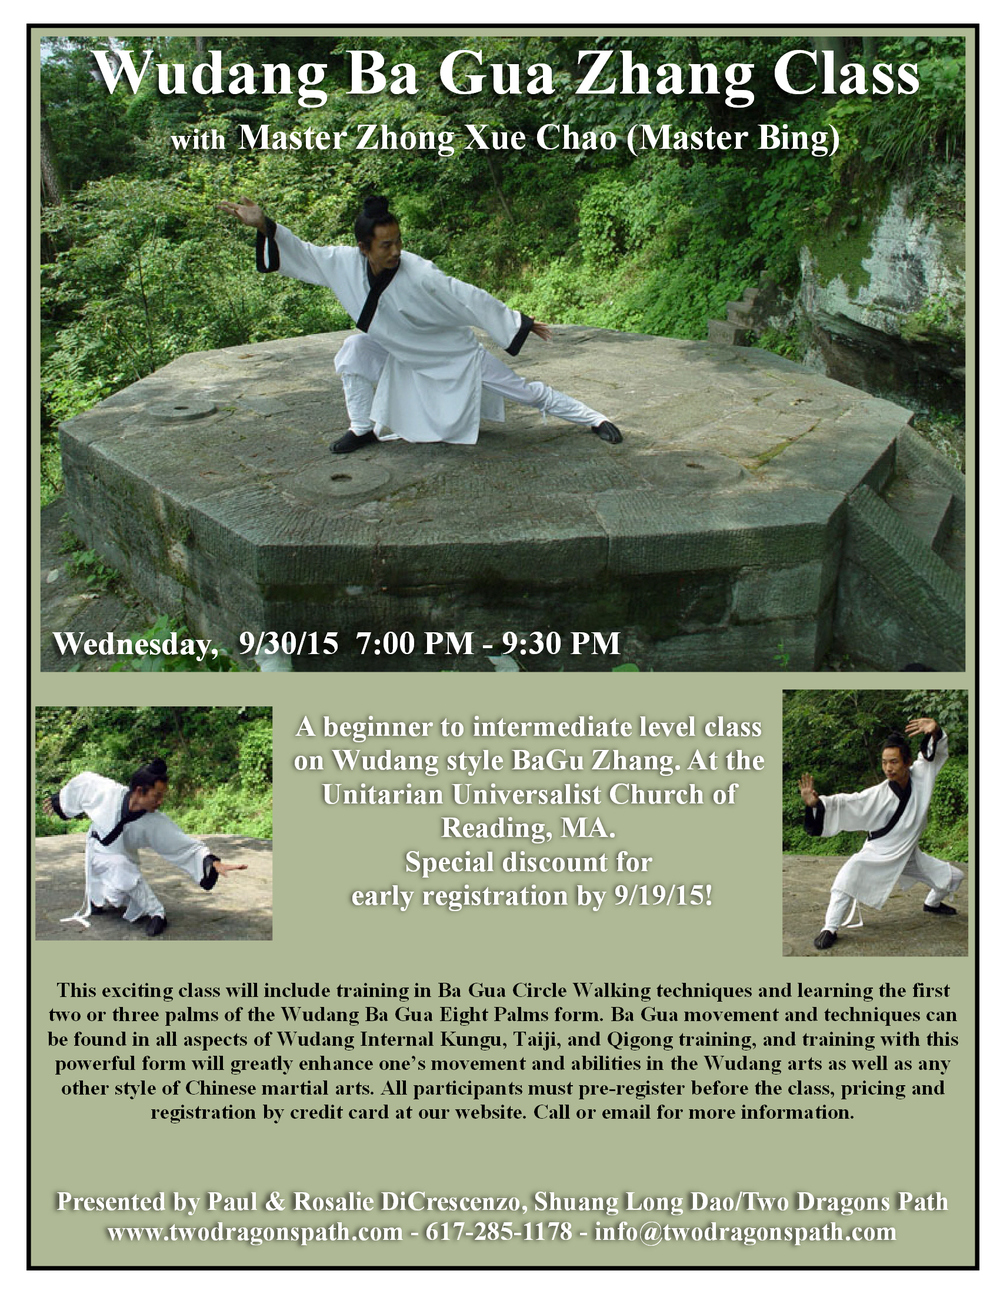 Wudang BaGua With Master Bing